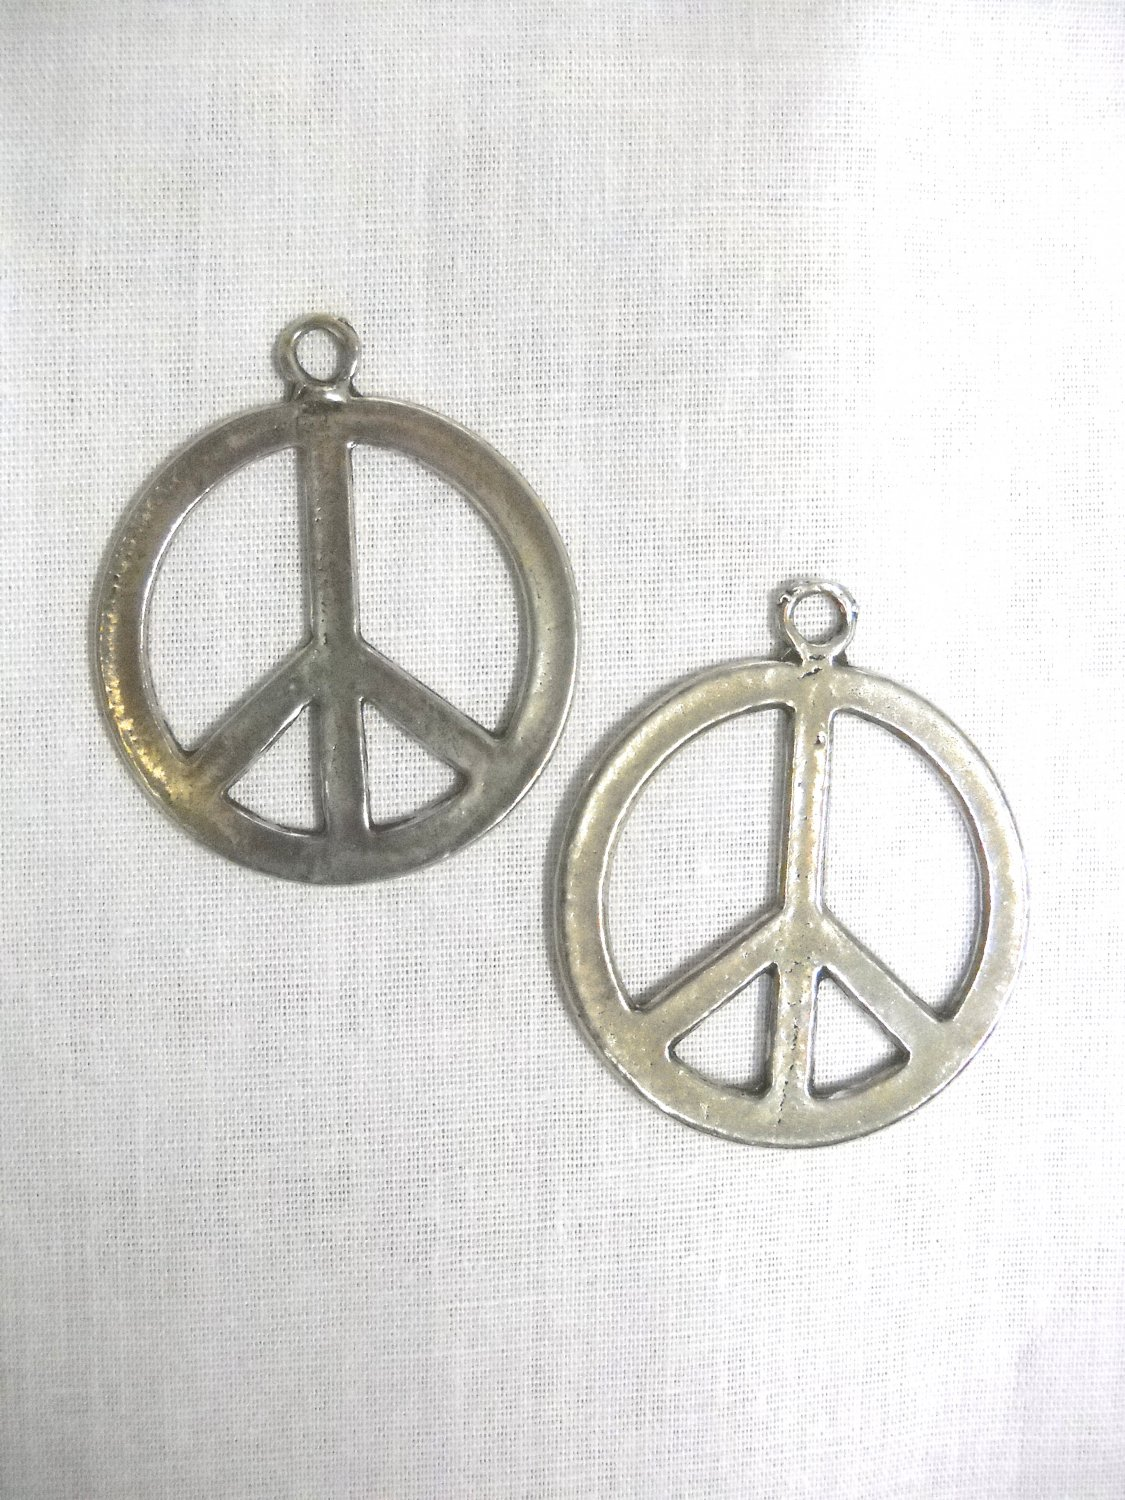 SALE FLASHBACK ROUND SILVER PEWTER HIPPIE PEACE SIGN PENDANT EARRINGS JEWELRY